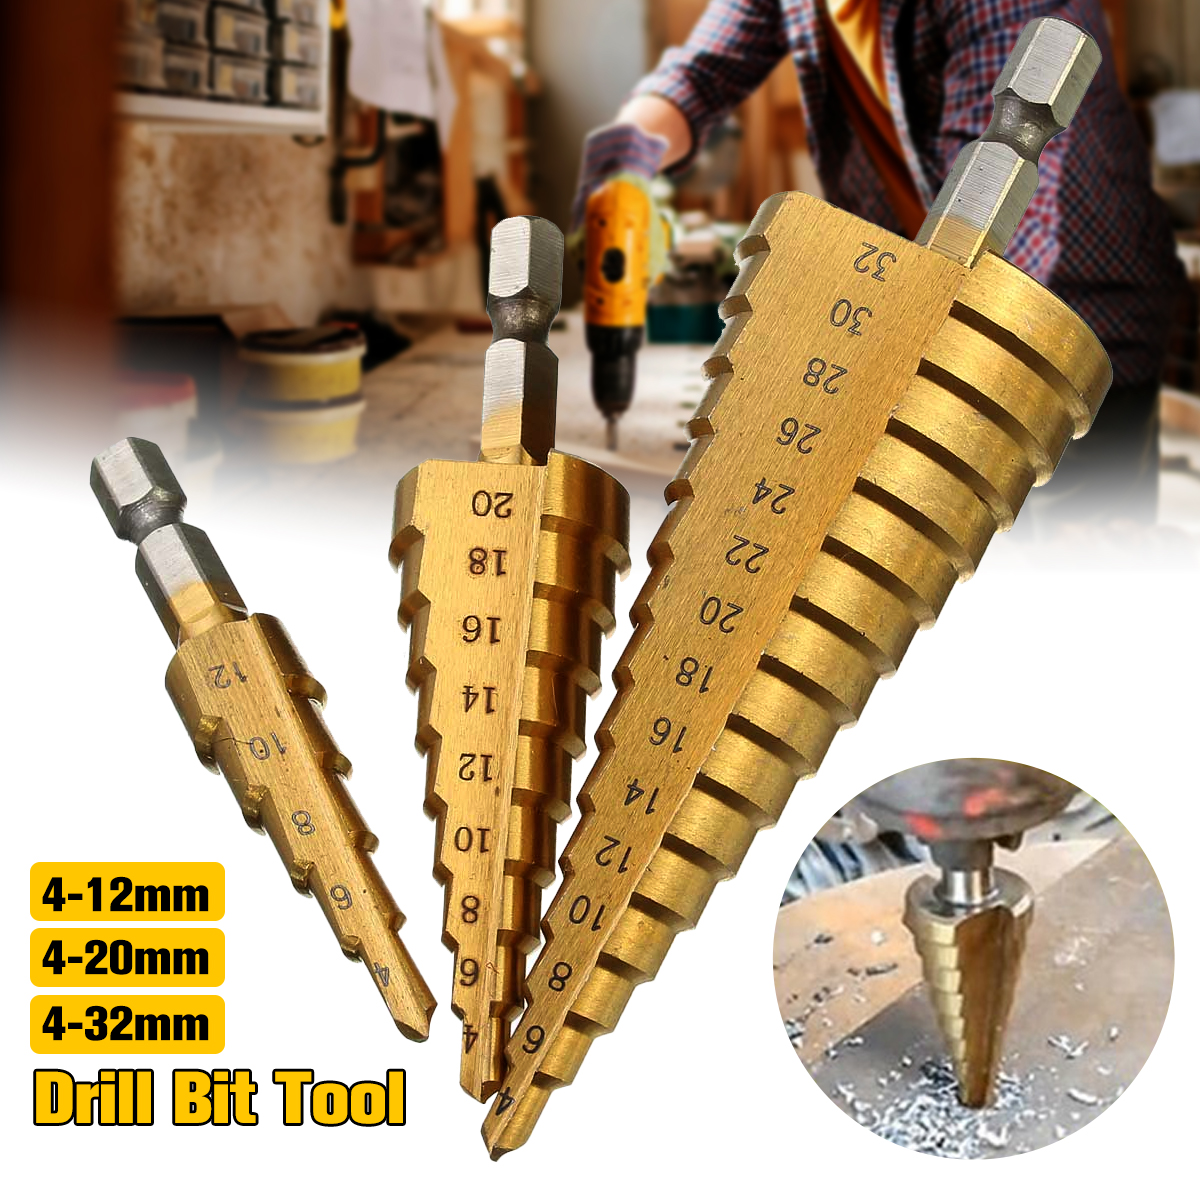 Drillpro 1pcs Titanium HSS Step Drill Bits for Wood 4-12mm 4-20mm 4-32mm Metal Drilling Woodworking Power Tools Wholesale Price drillpro 3pcs hss spiral grooved center drill bit 4 12 20 32mm solid carbide mini drill accessories titanium step cone drill bit